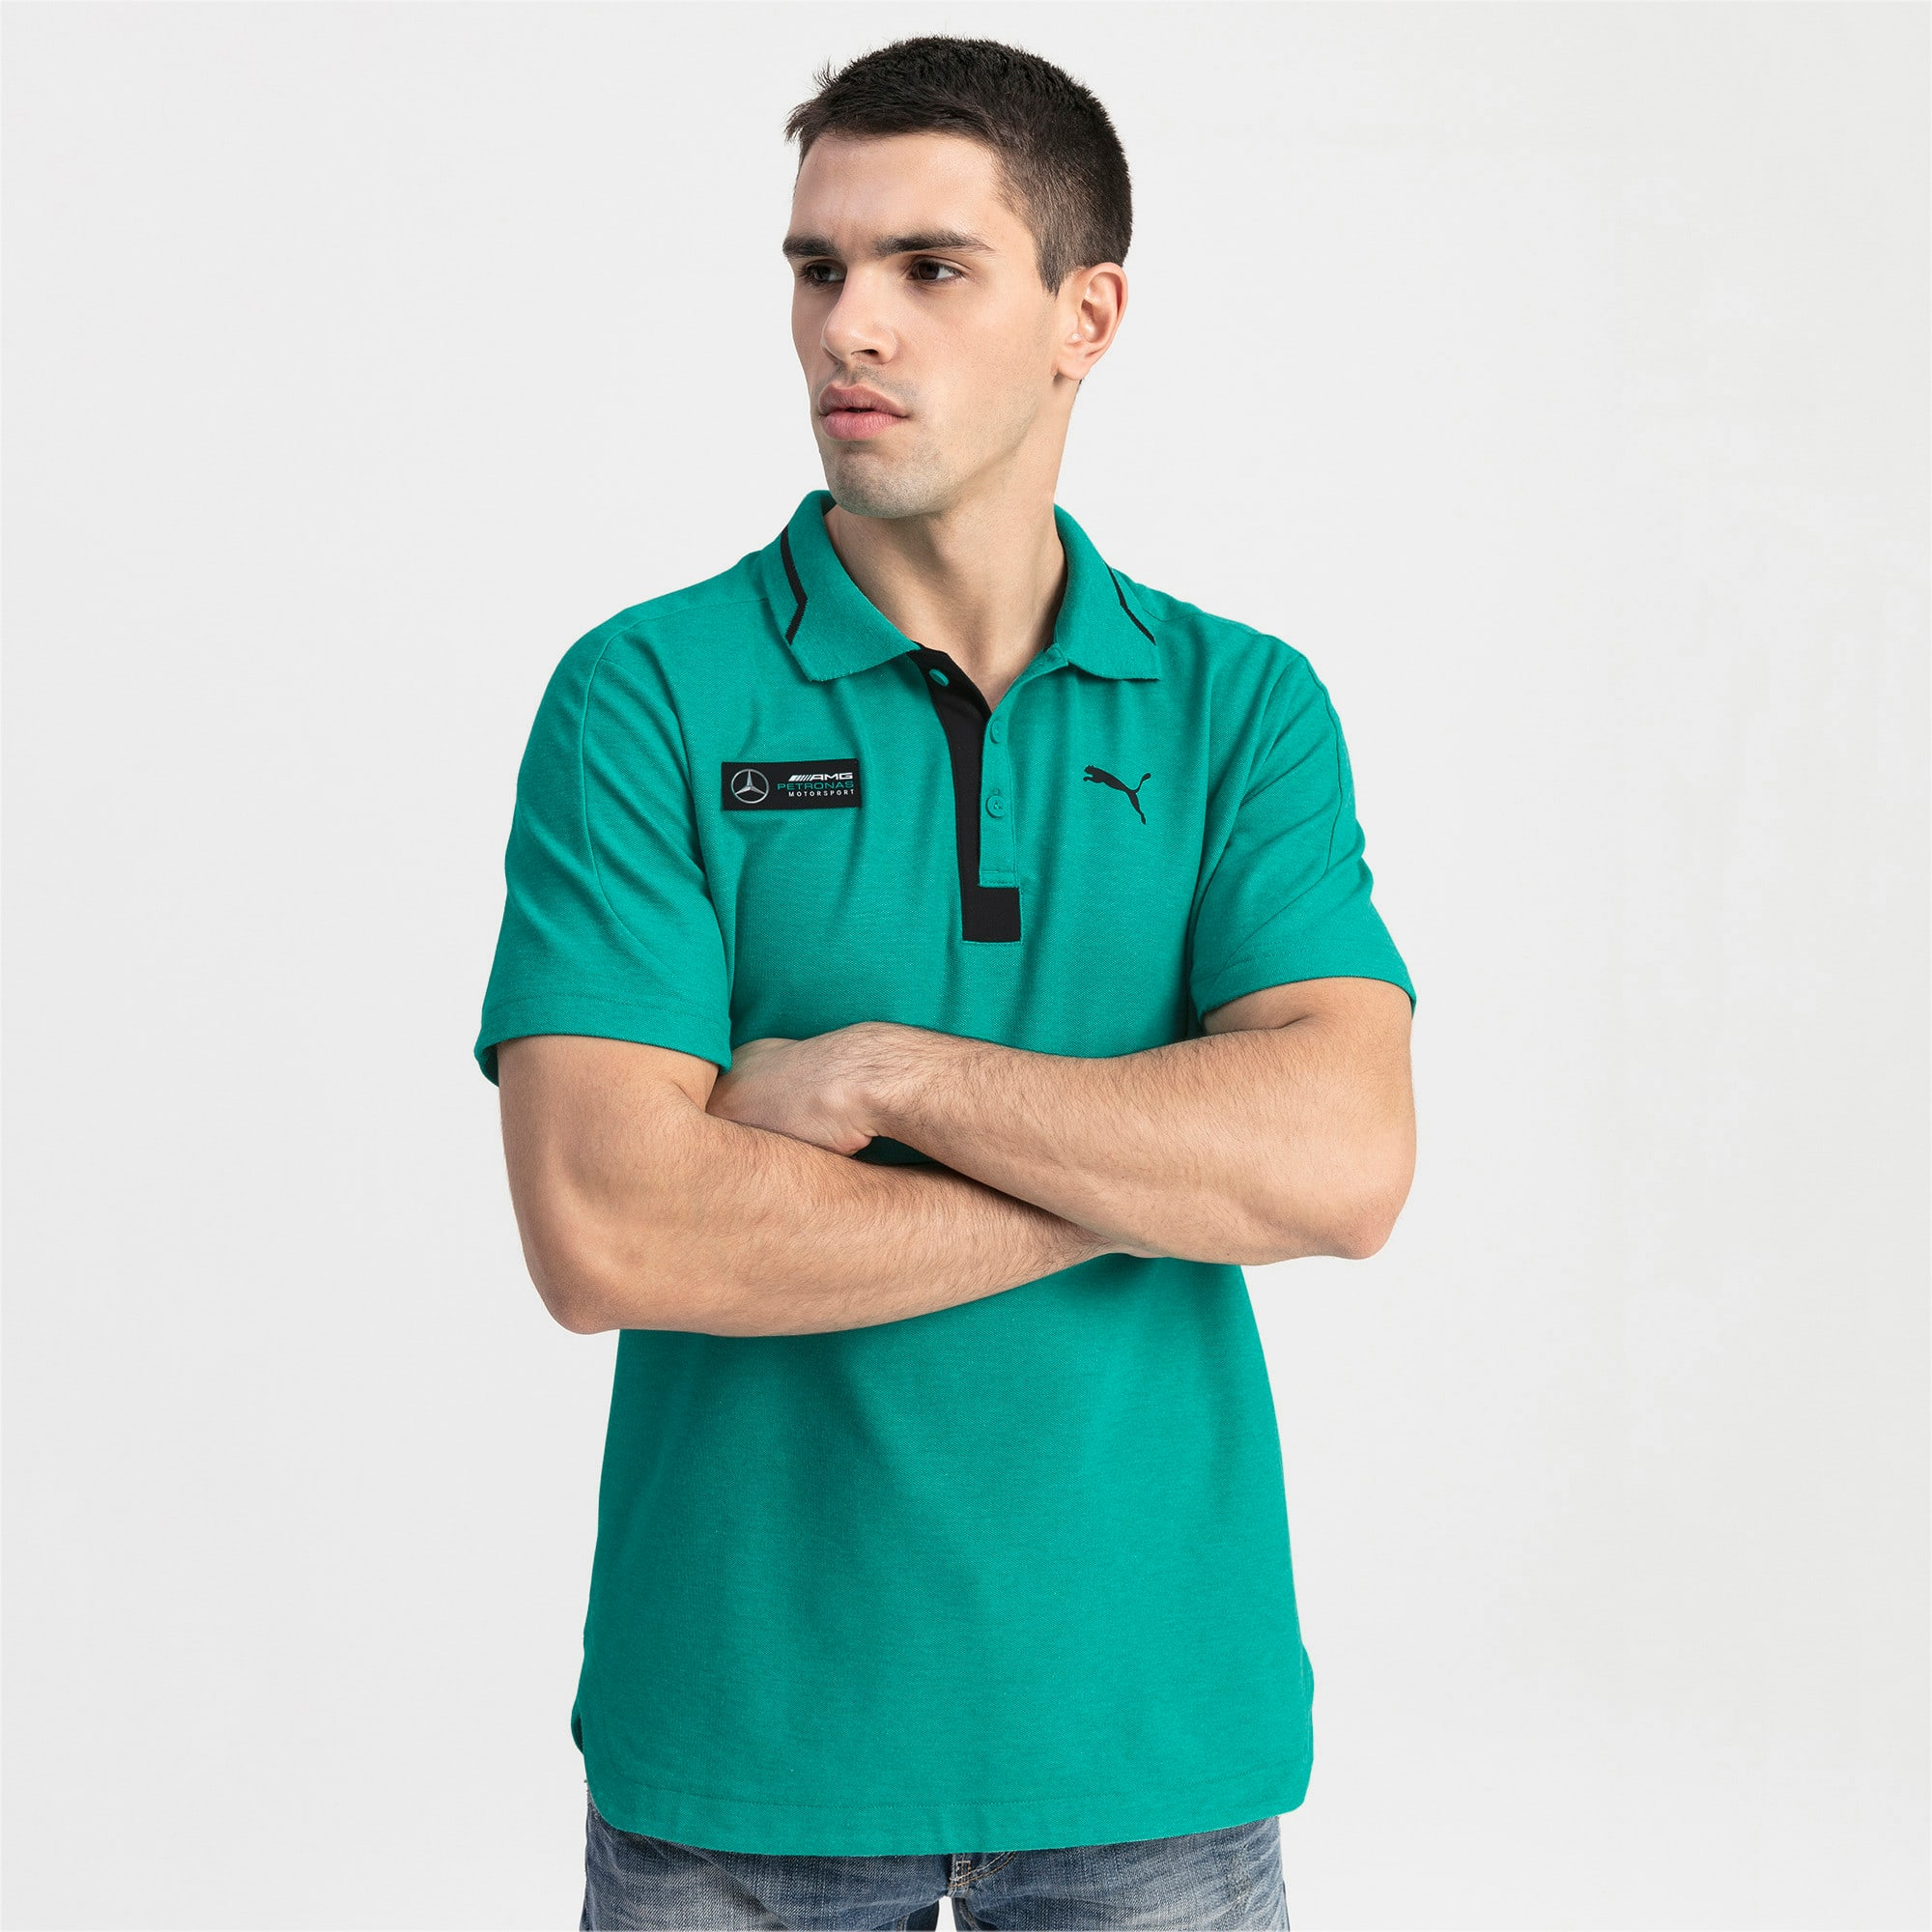 Mercedes AMG Petronas Men's Polo Shirt, Spectra Green Heather, large